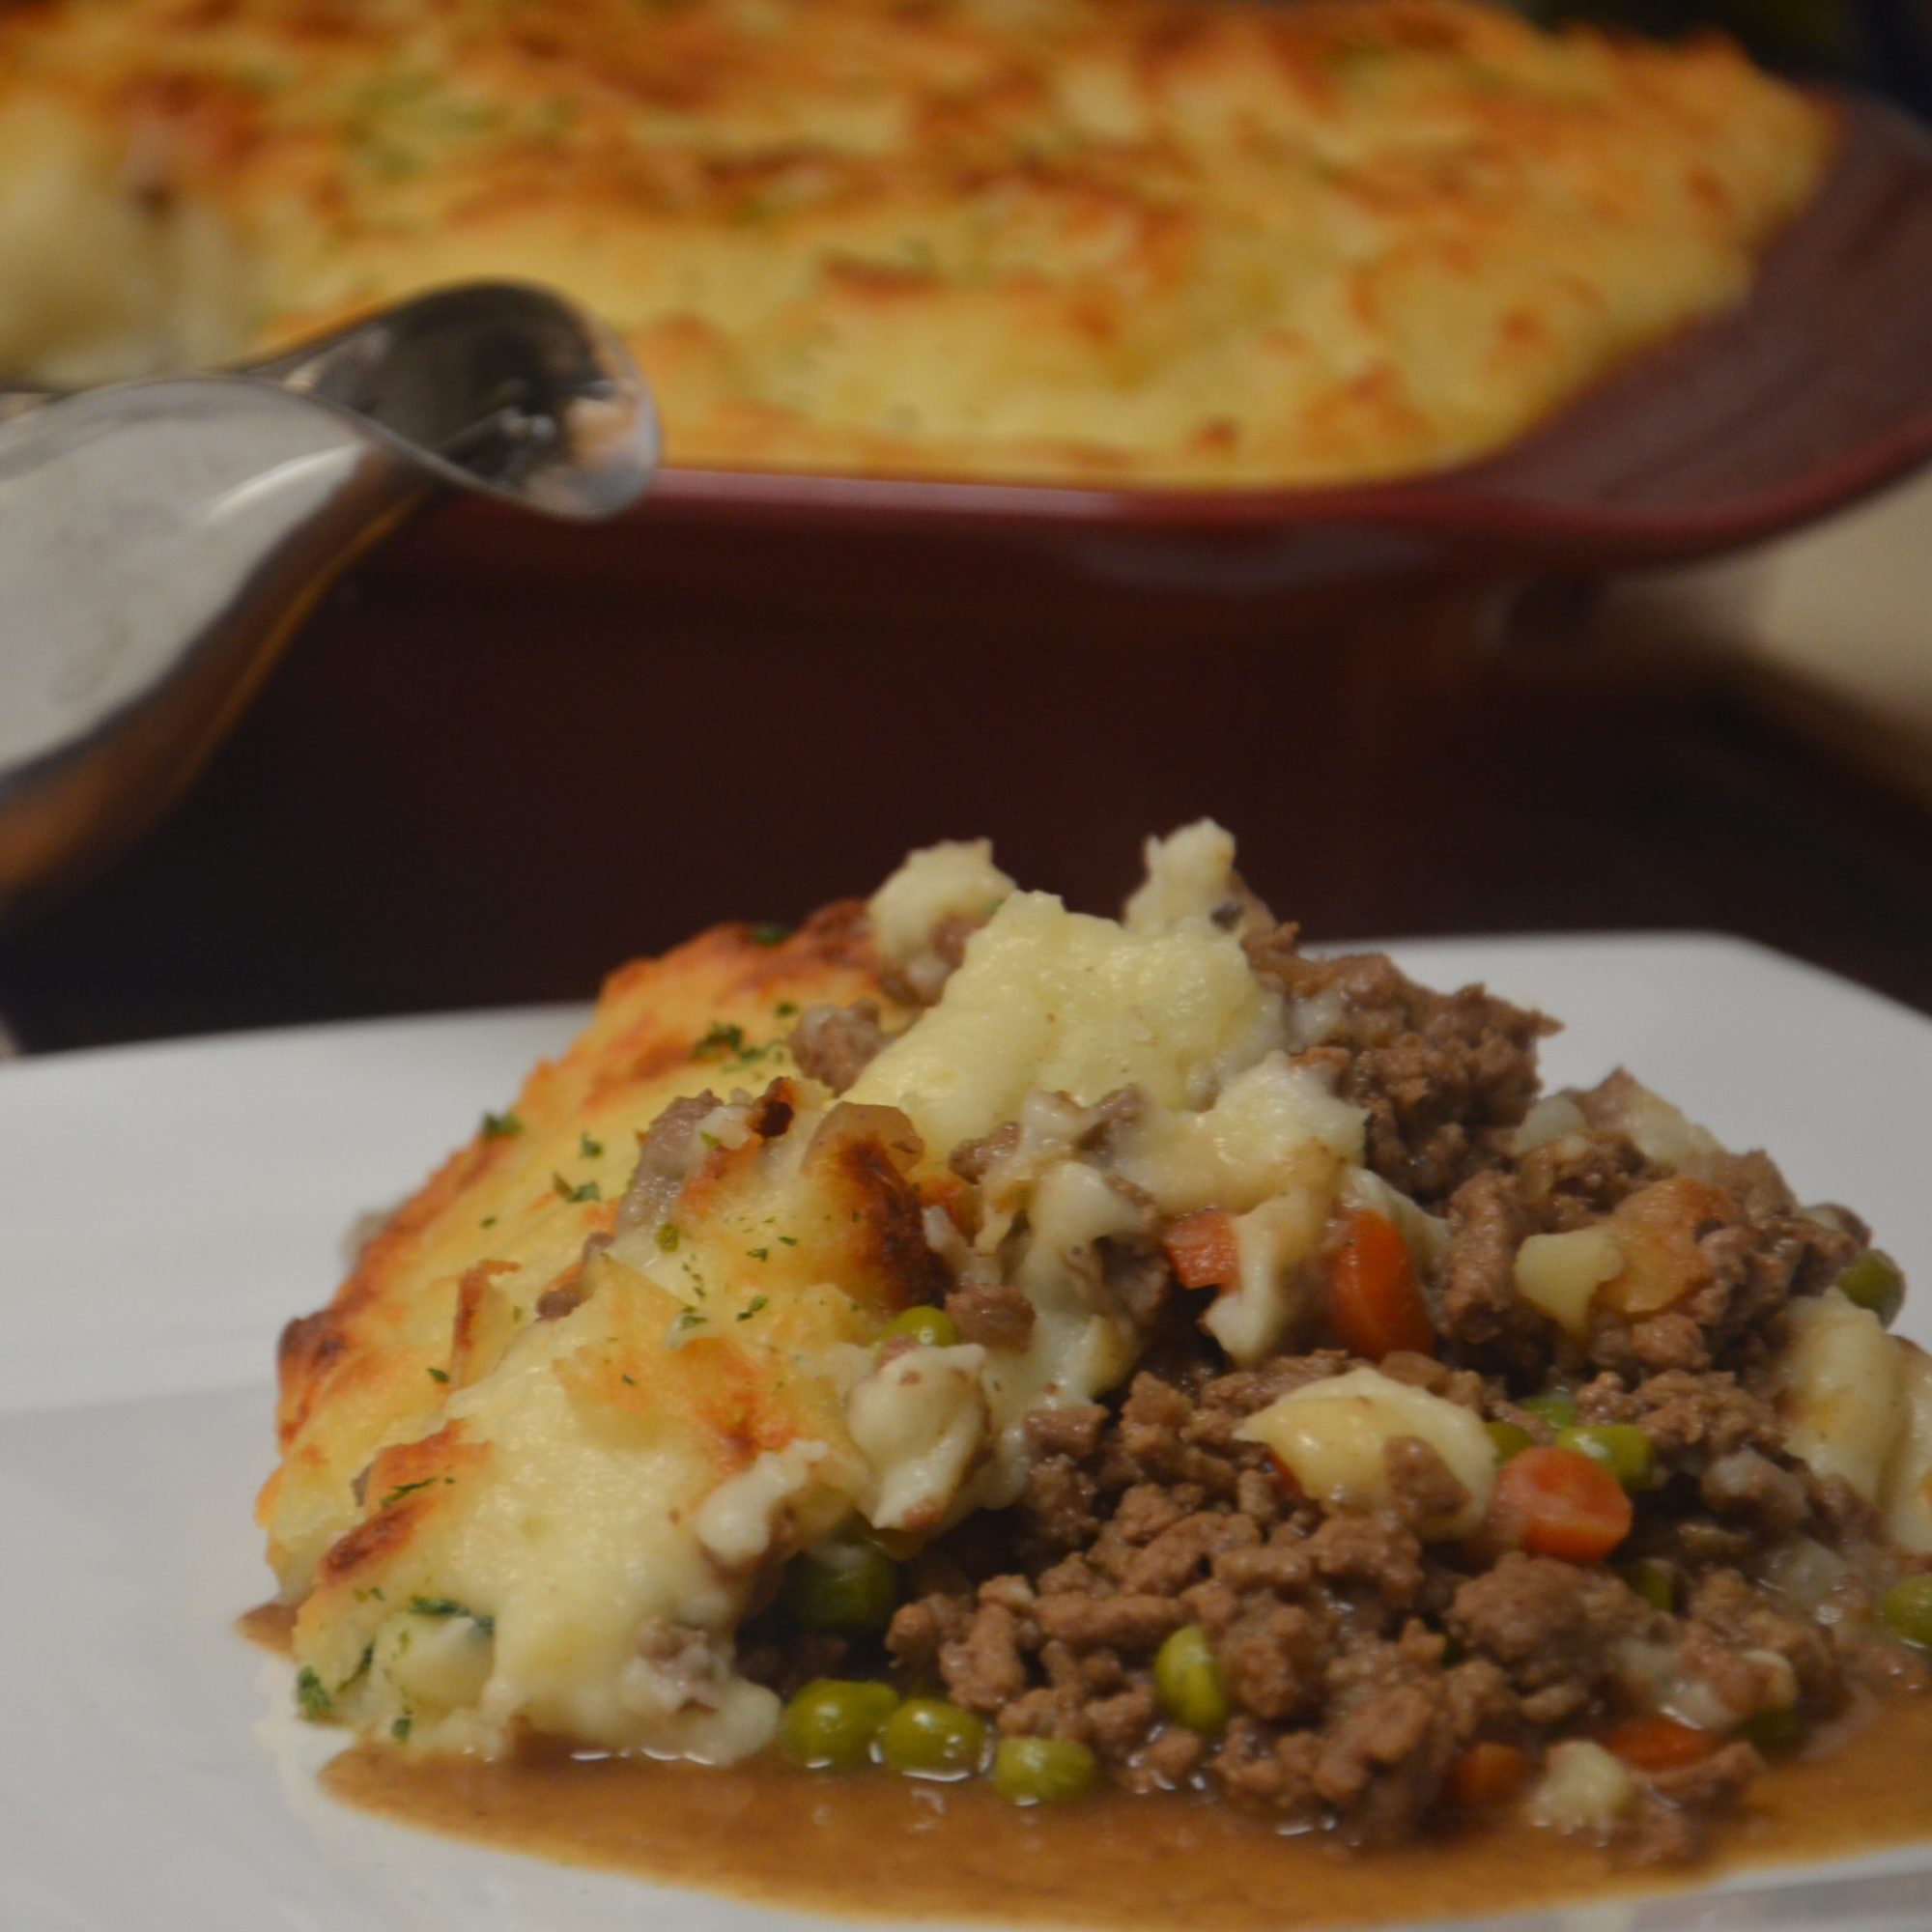 a serving of shepherd's pie on a white plate with the rest of the casserole in the background